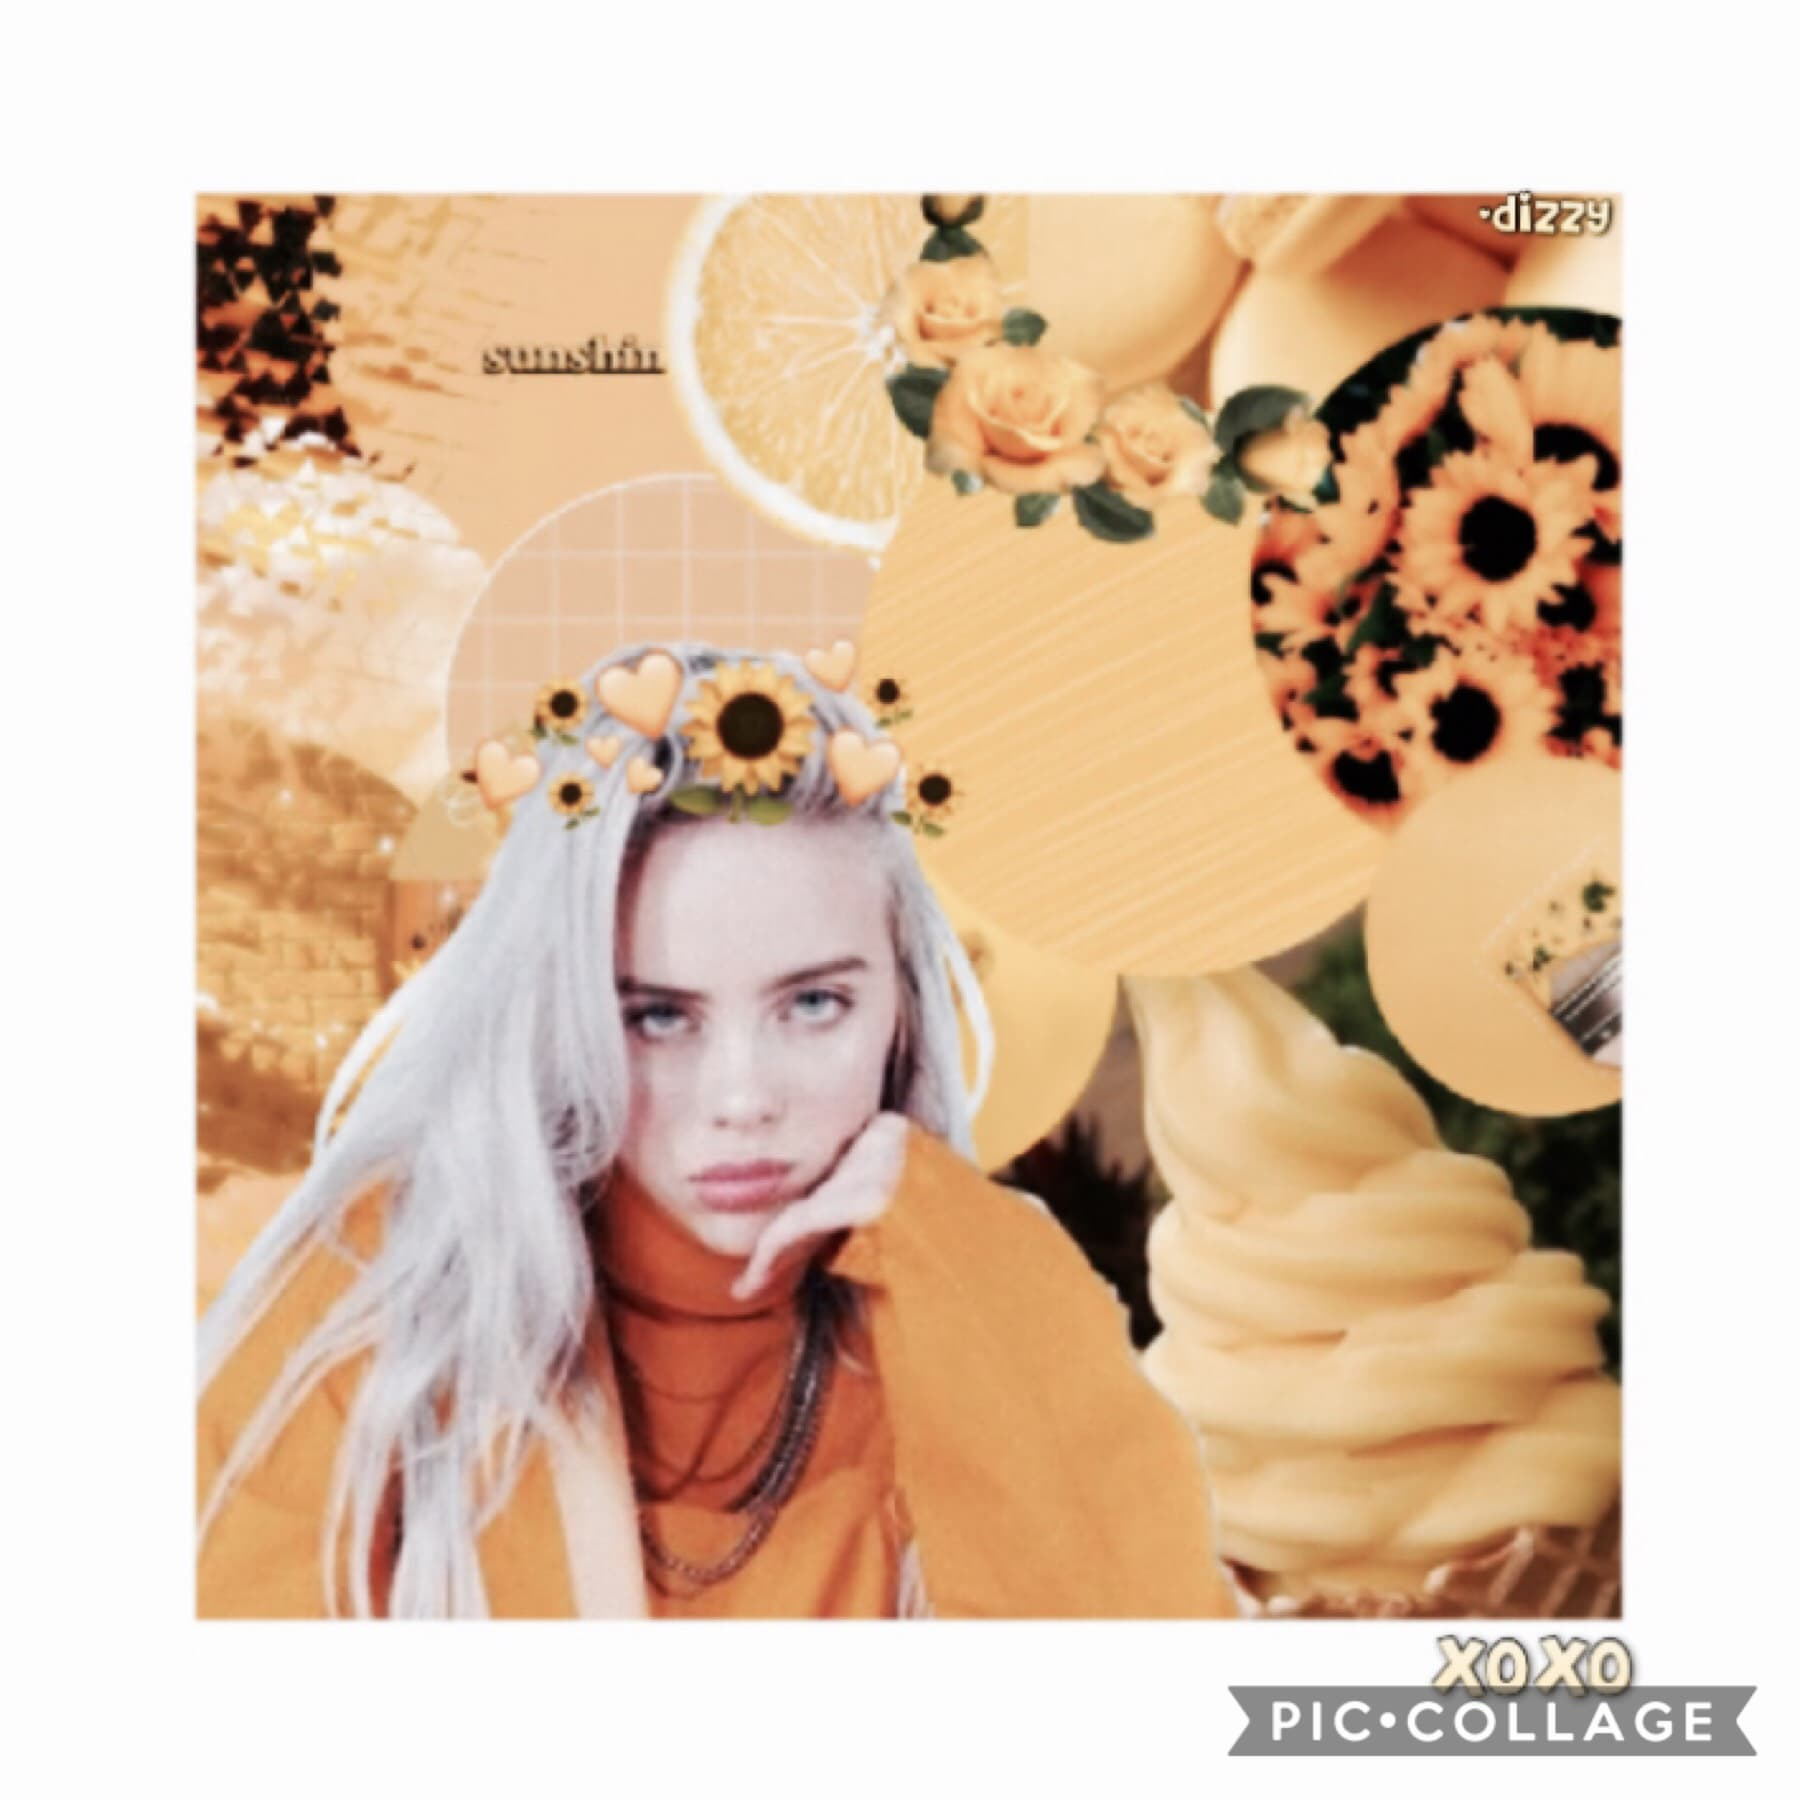 tap🧡 not my best😂 sry for the inactivity😳 check remixes if u wanna know y I've been inactive🤷🏻♀️😂 anyone wanna collab?💛 QOTD: fav song? AOTD: Idgaf by Sik World🤪